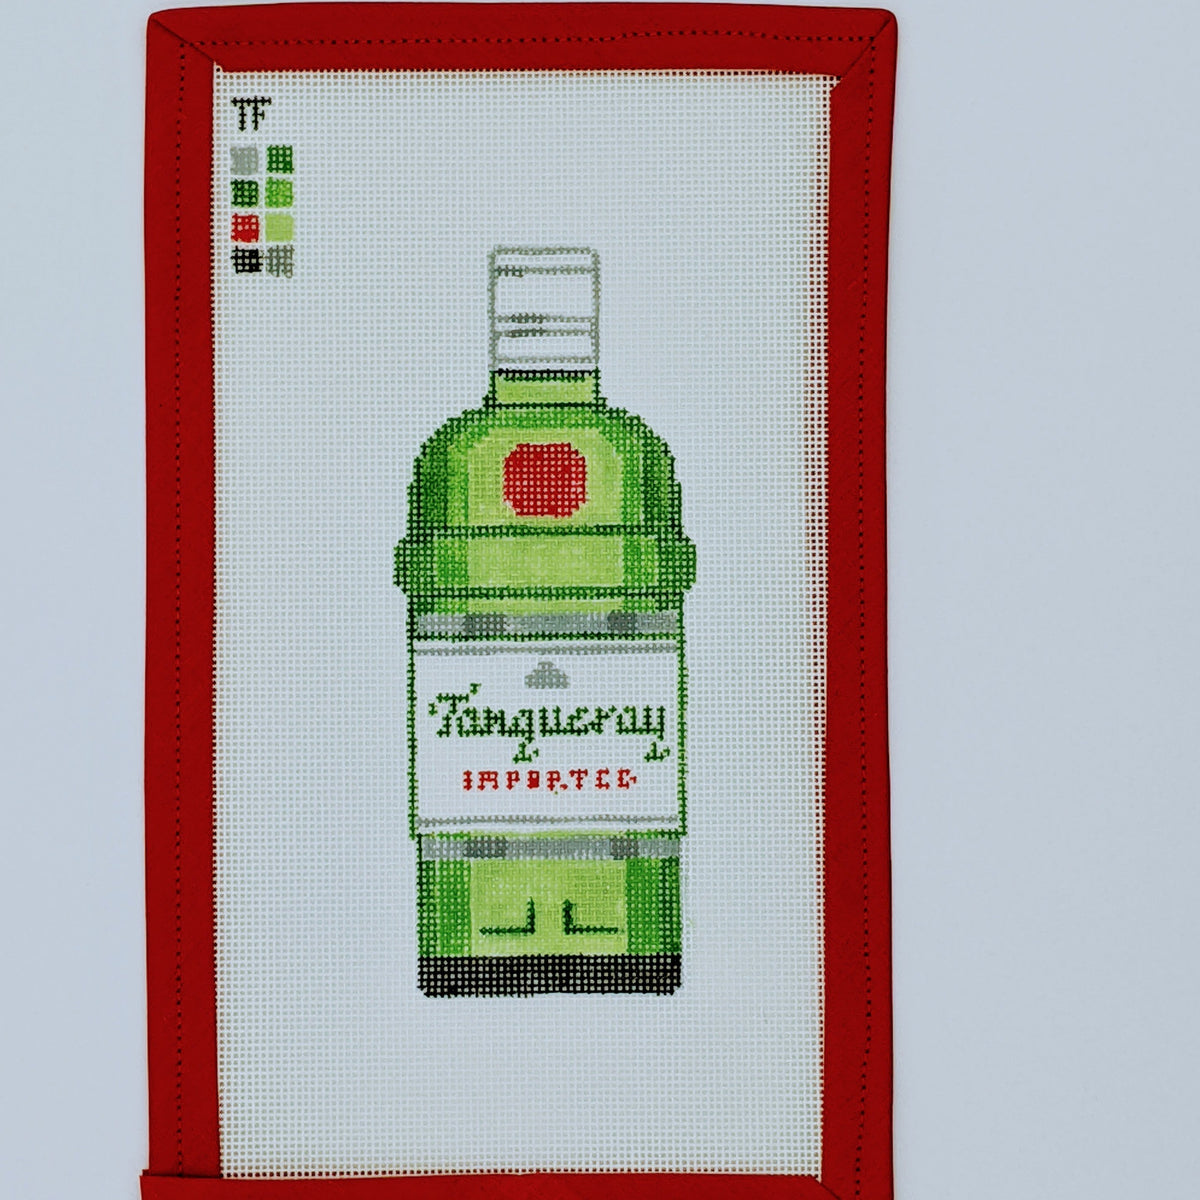 Tanqueray Gin Bottle